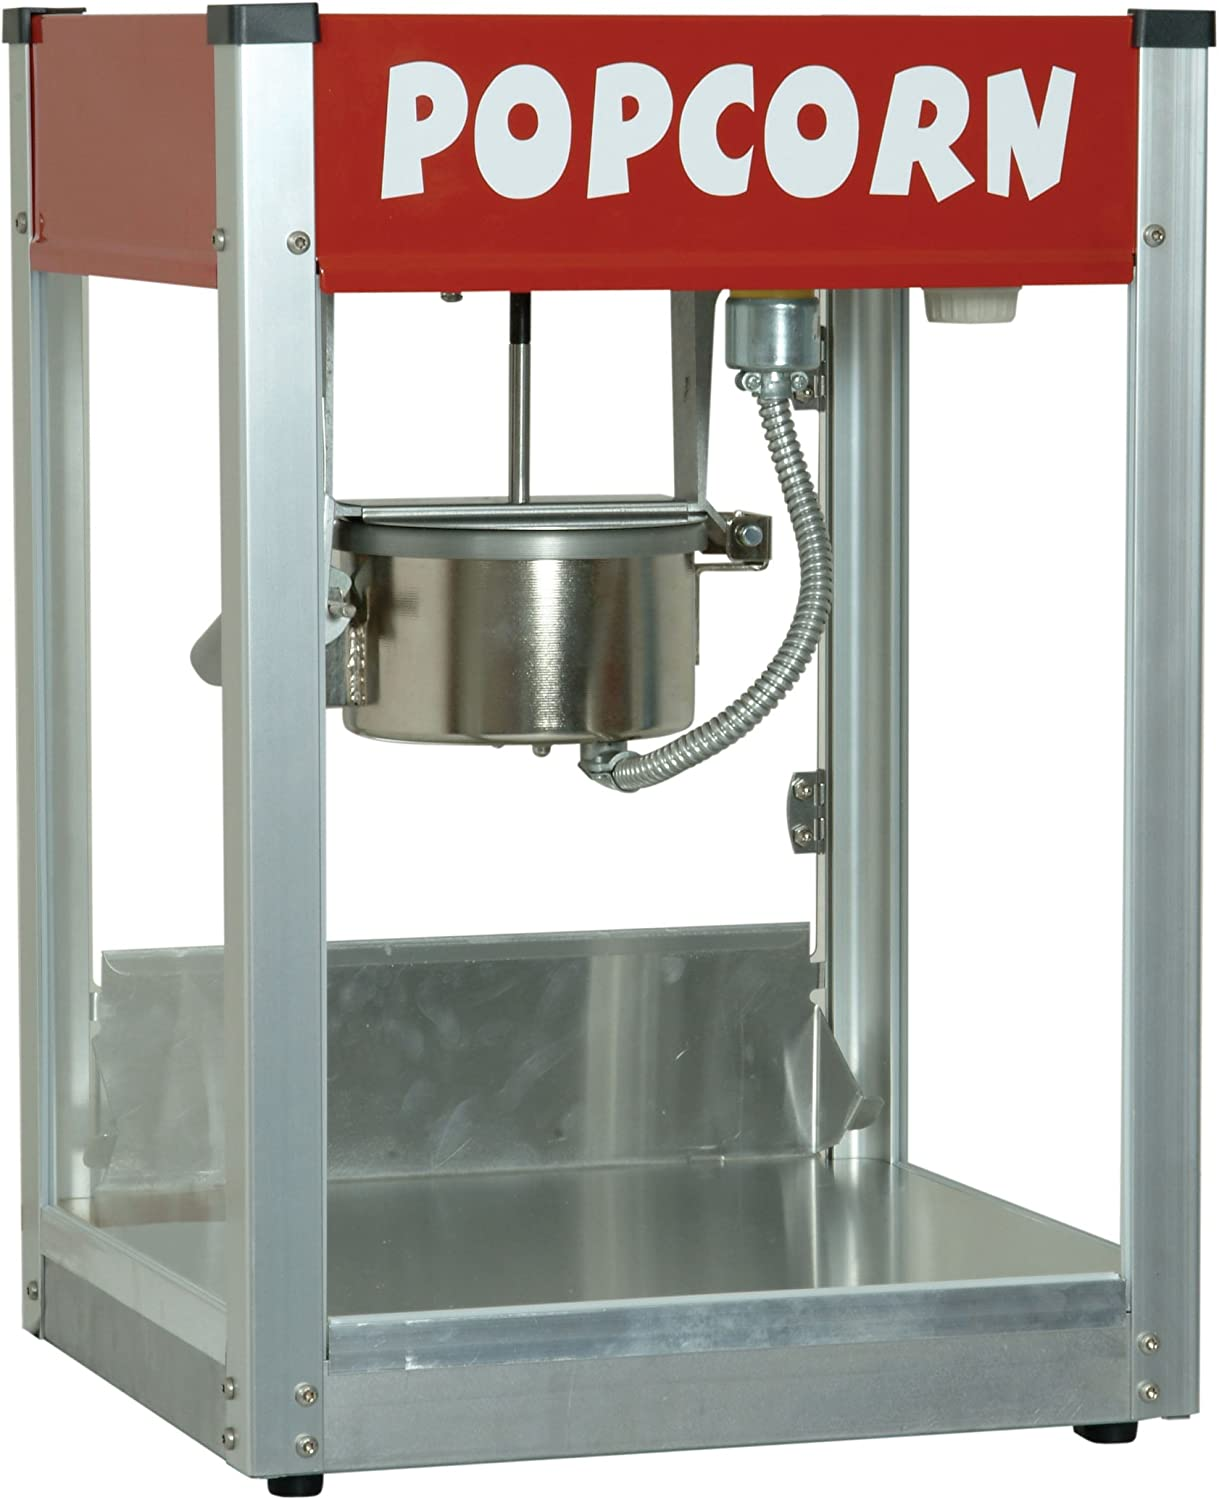 Paragon – Manufactured Fun Thrifty Pop 4 Ounce Popcorn Machine for Professional Concessionaires Requiring Commercial Quality High Output Popcorn Equipment